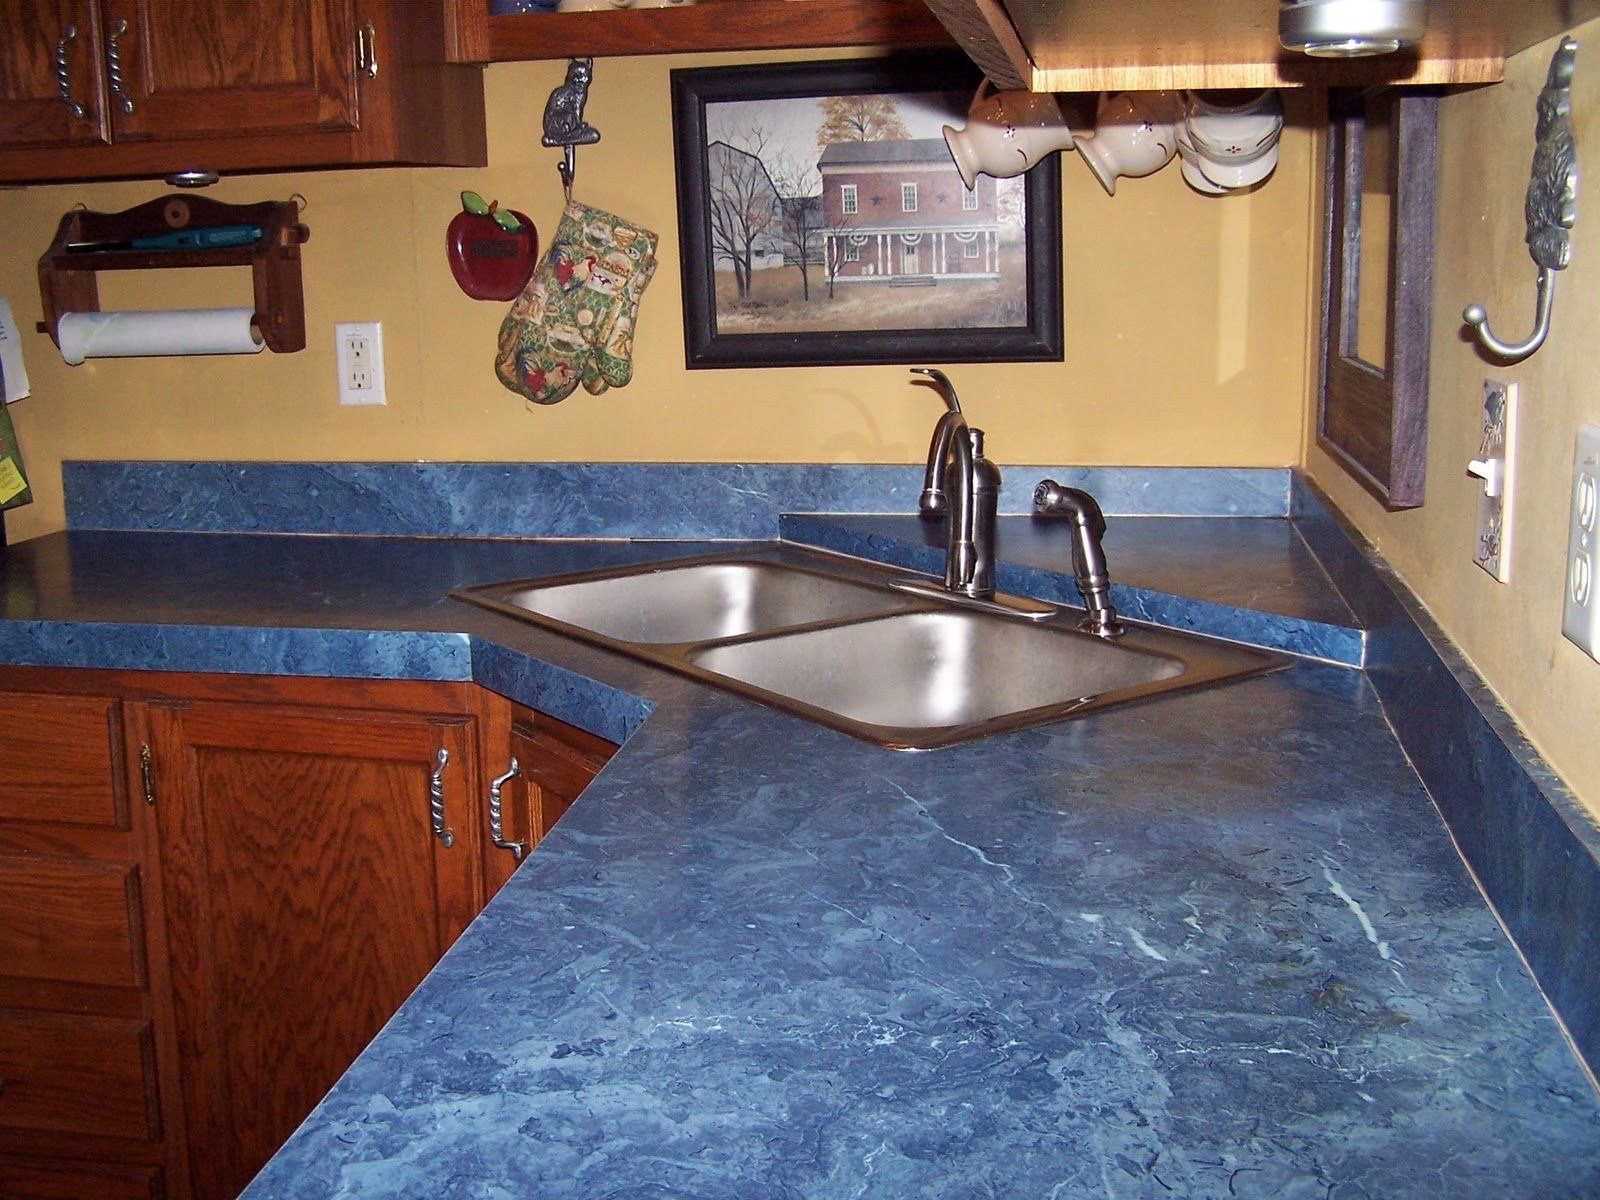 Modern Kitchen Interior Design With Blue Countertop Materials Tile - Kitchen counter surfaces